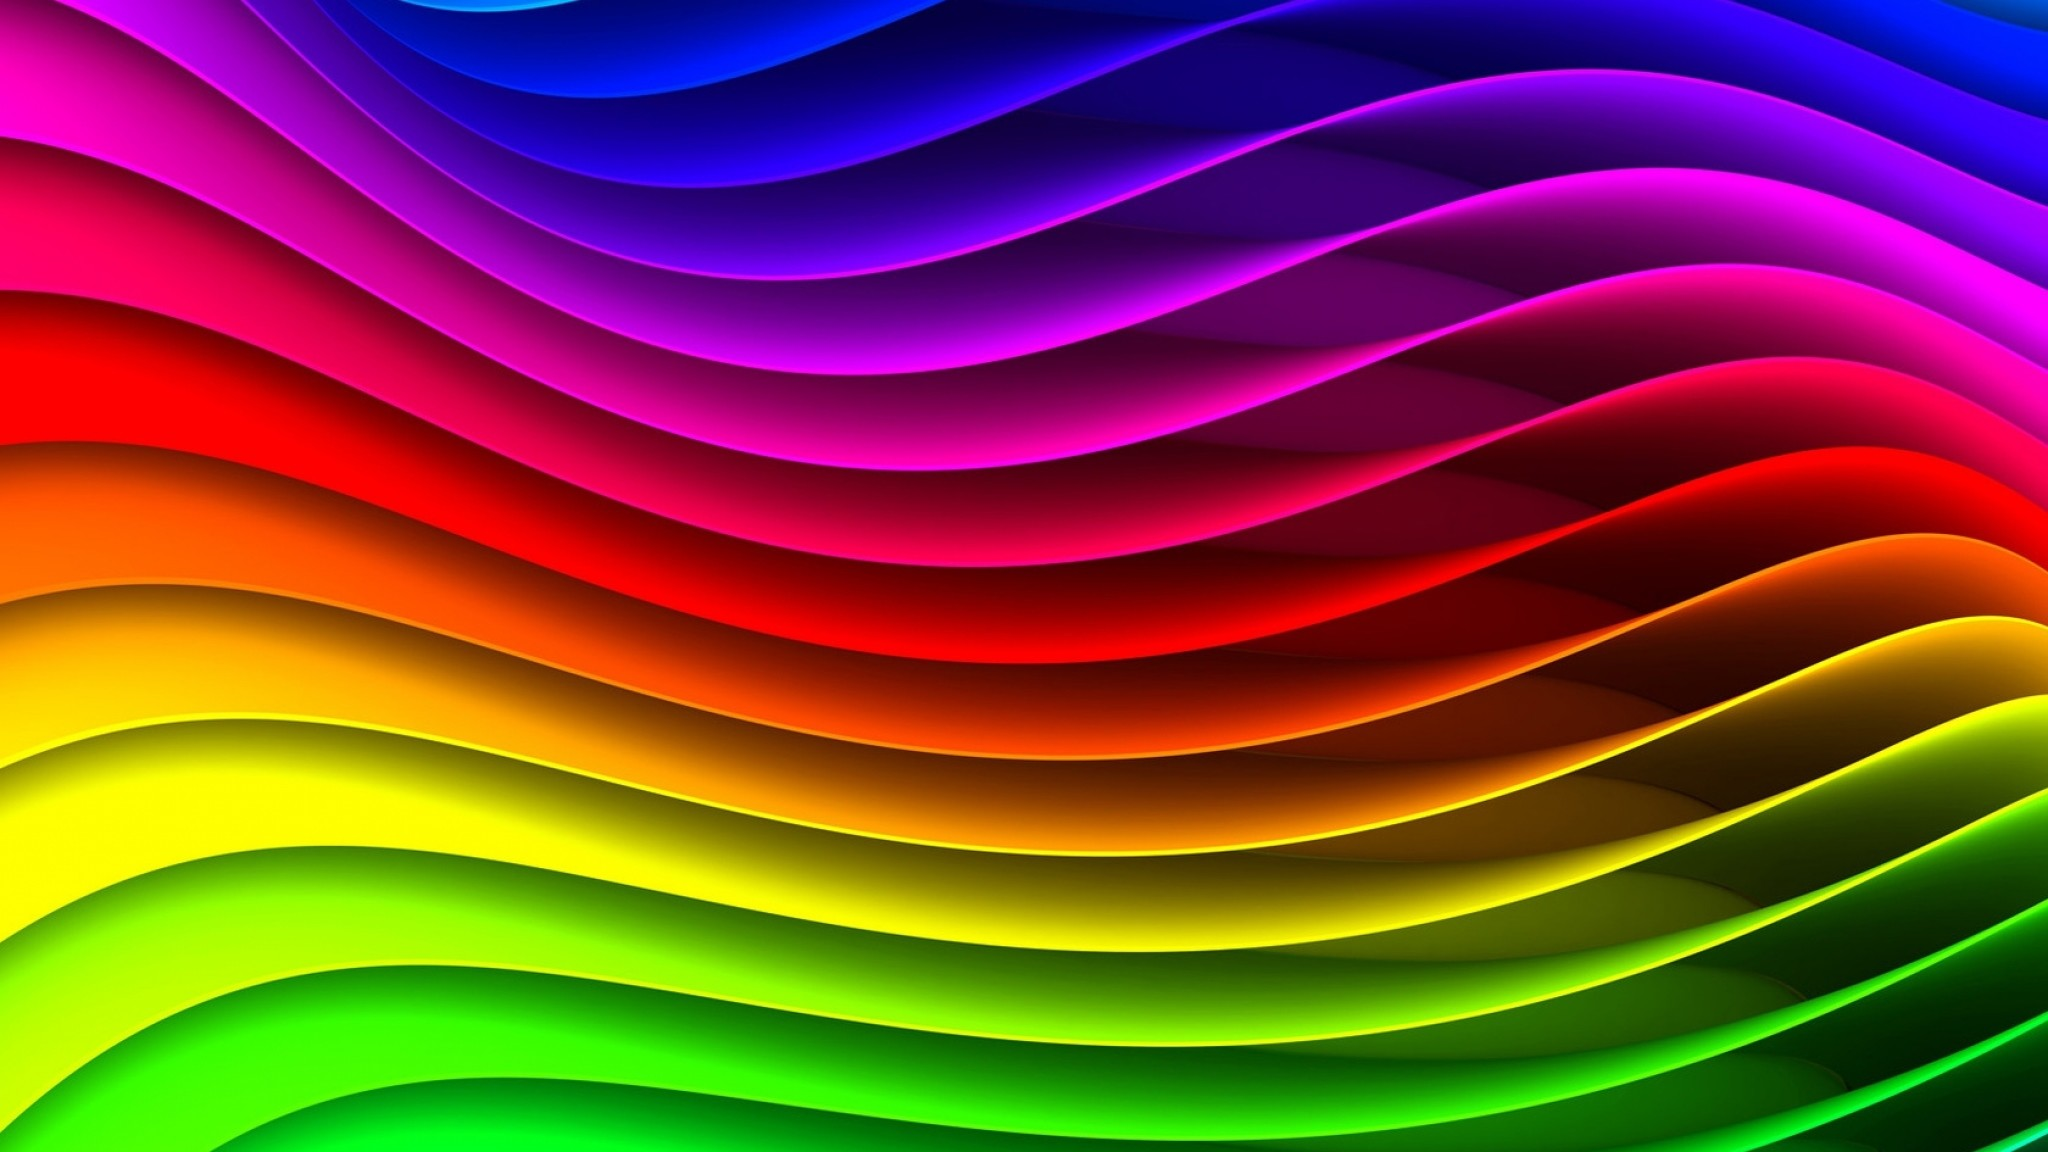 Preview wallpaper spectrum, rainbow, background, surface, stripes, texture,  waves 2048×1152